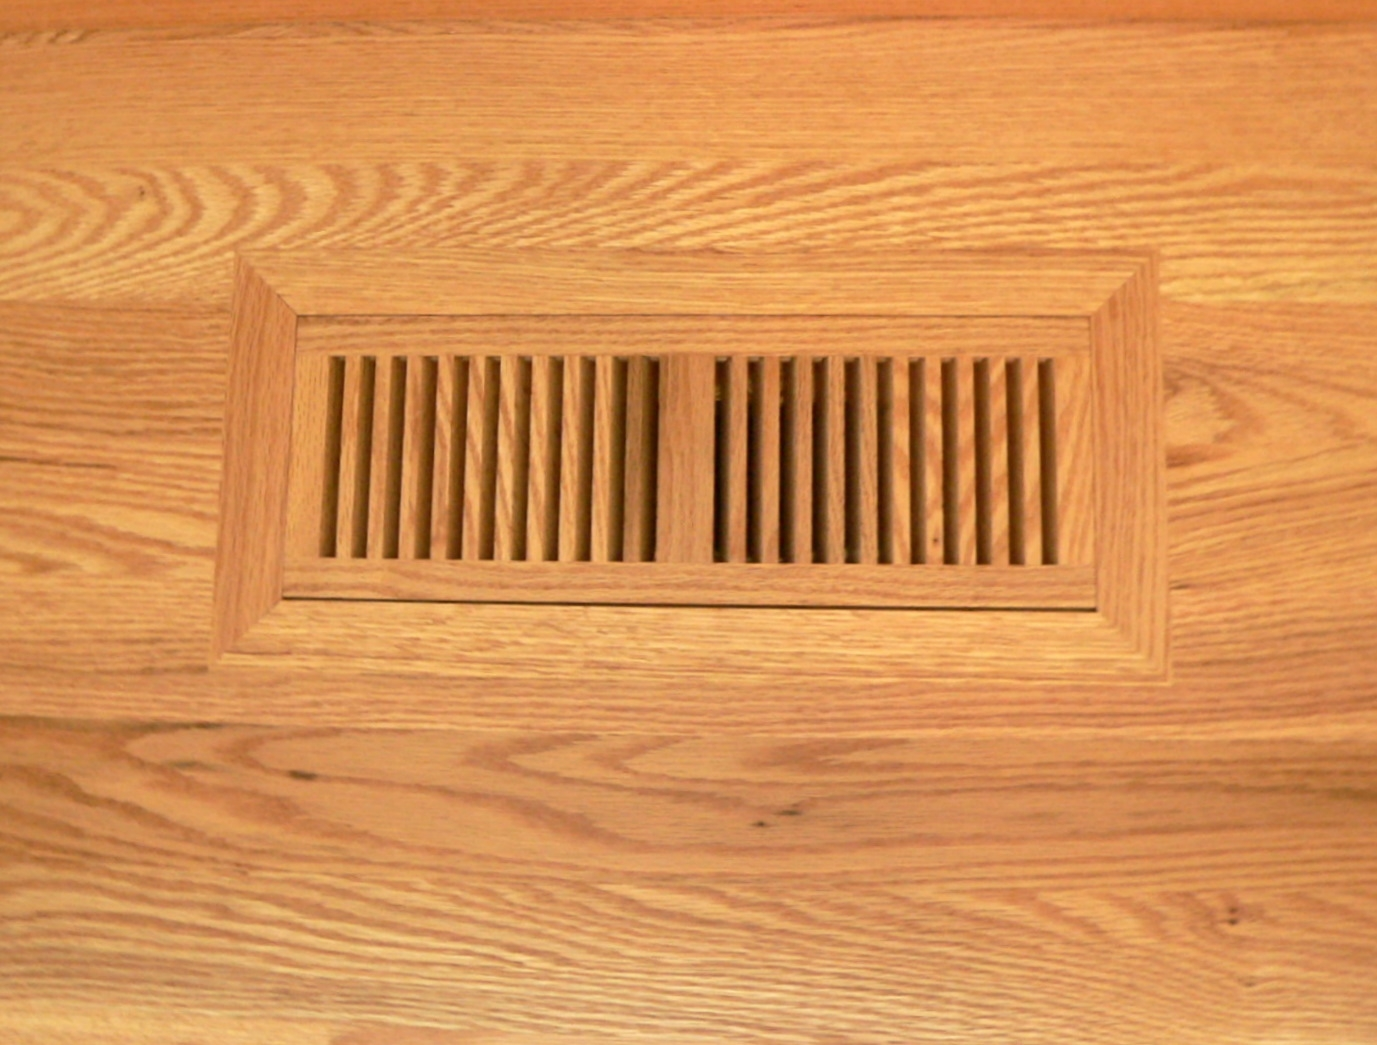 Wood Floor Registers And Grills